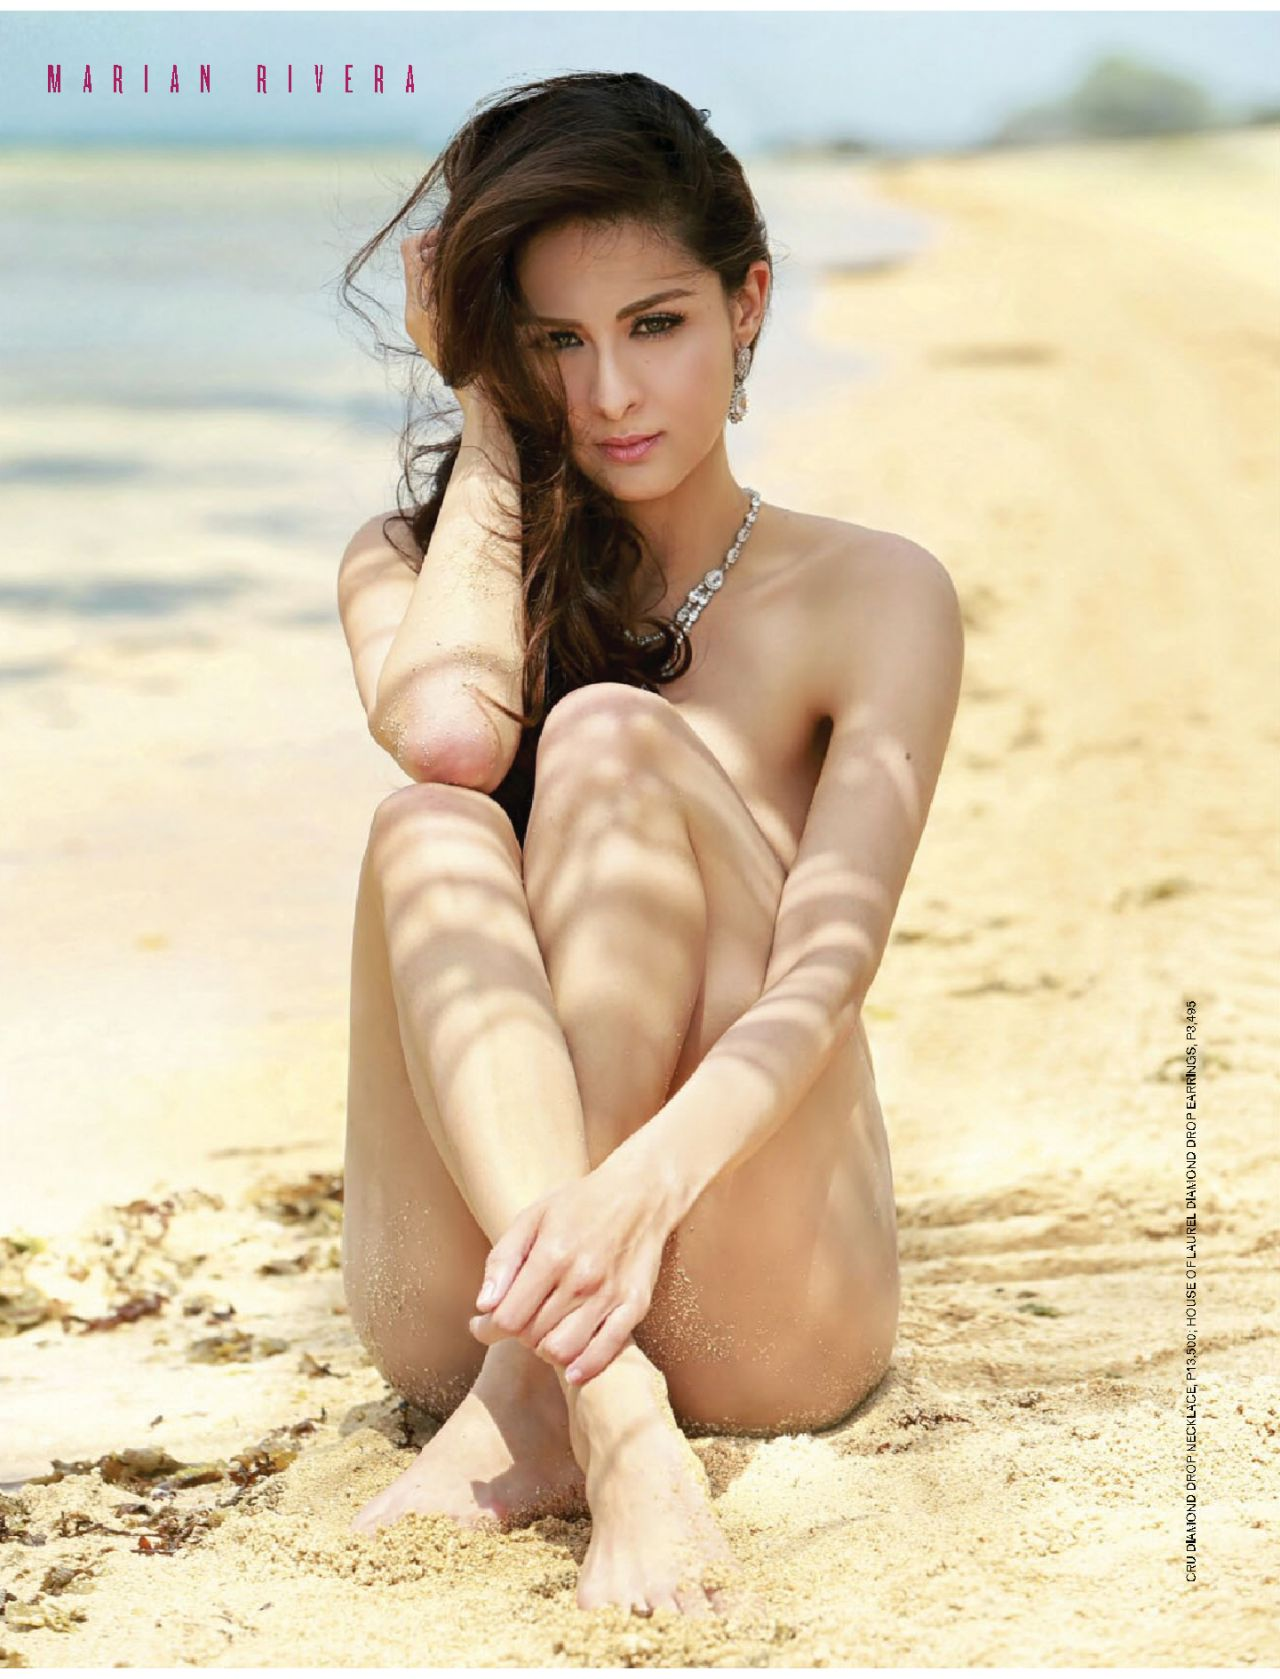 Marian rivera fhm cover think, that